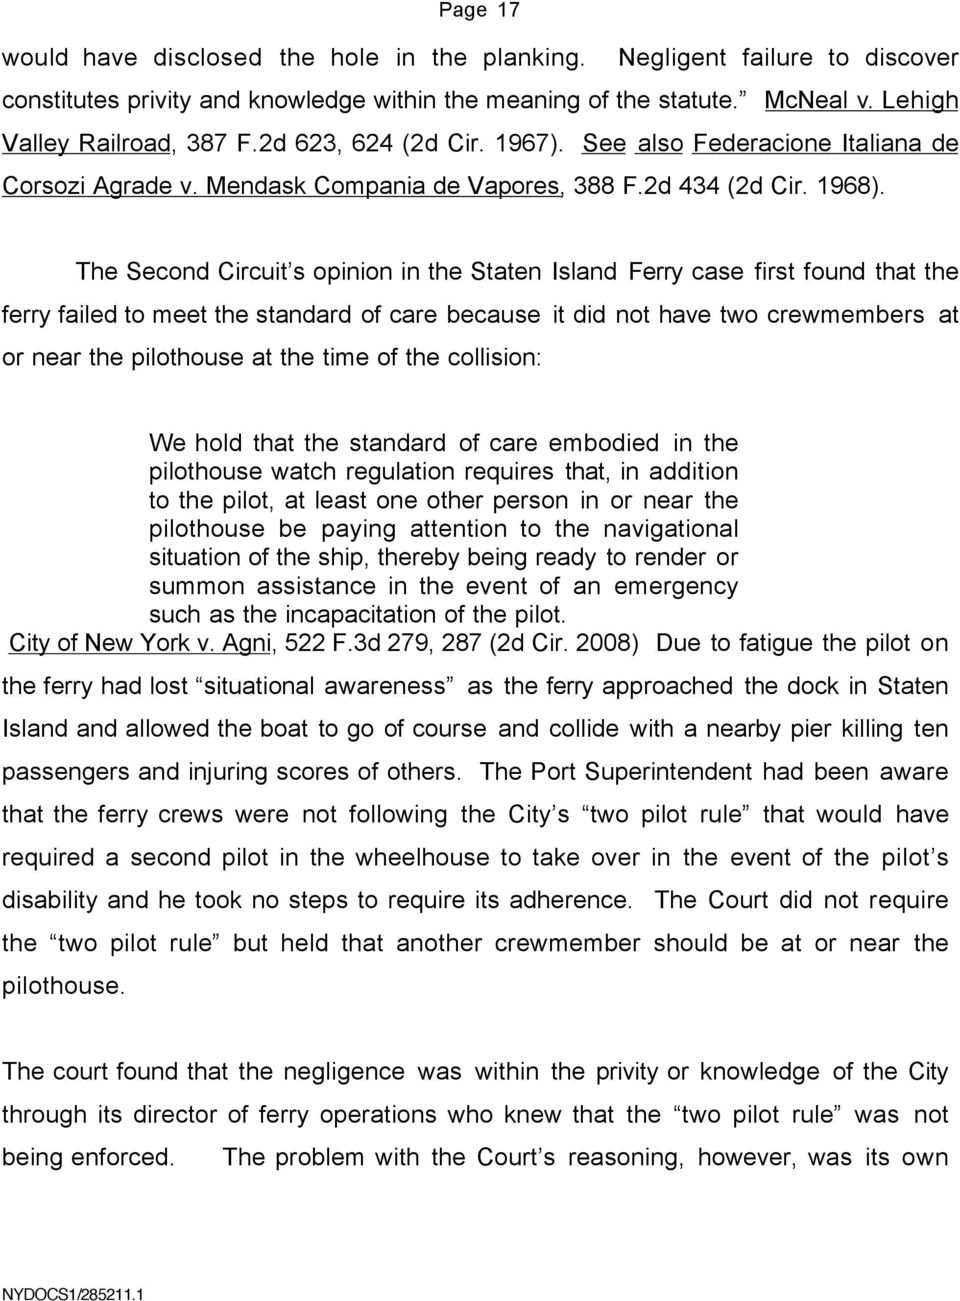 The Second Circuit s opinion in the Staten Island Ferry case first found that the ferry failed to meet the standard of care because it did not have two crewmembers at or near the pilothouse at the